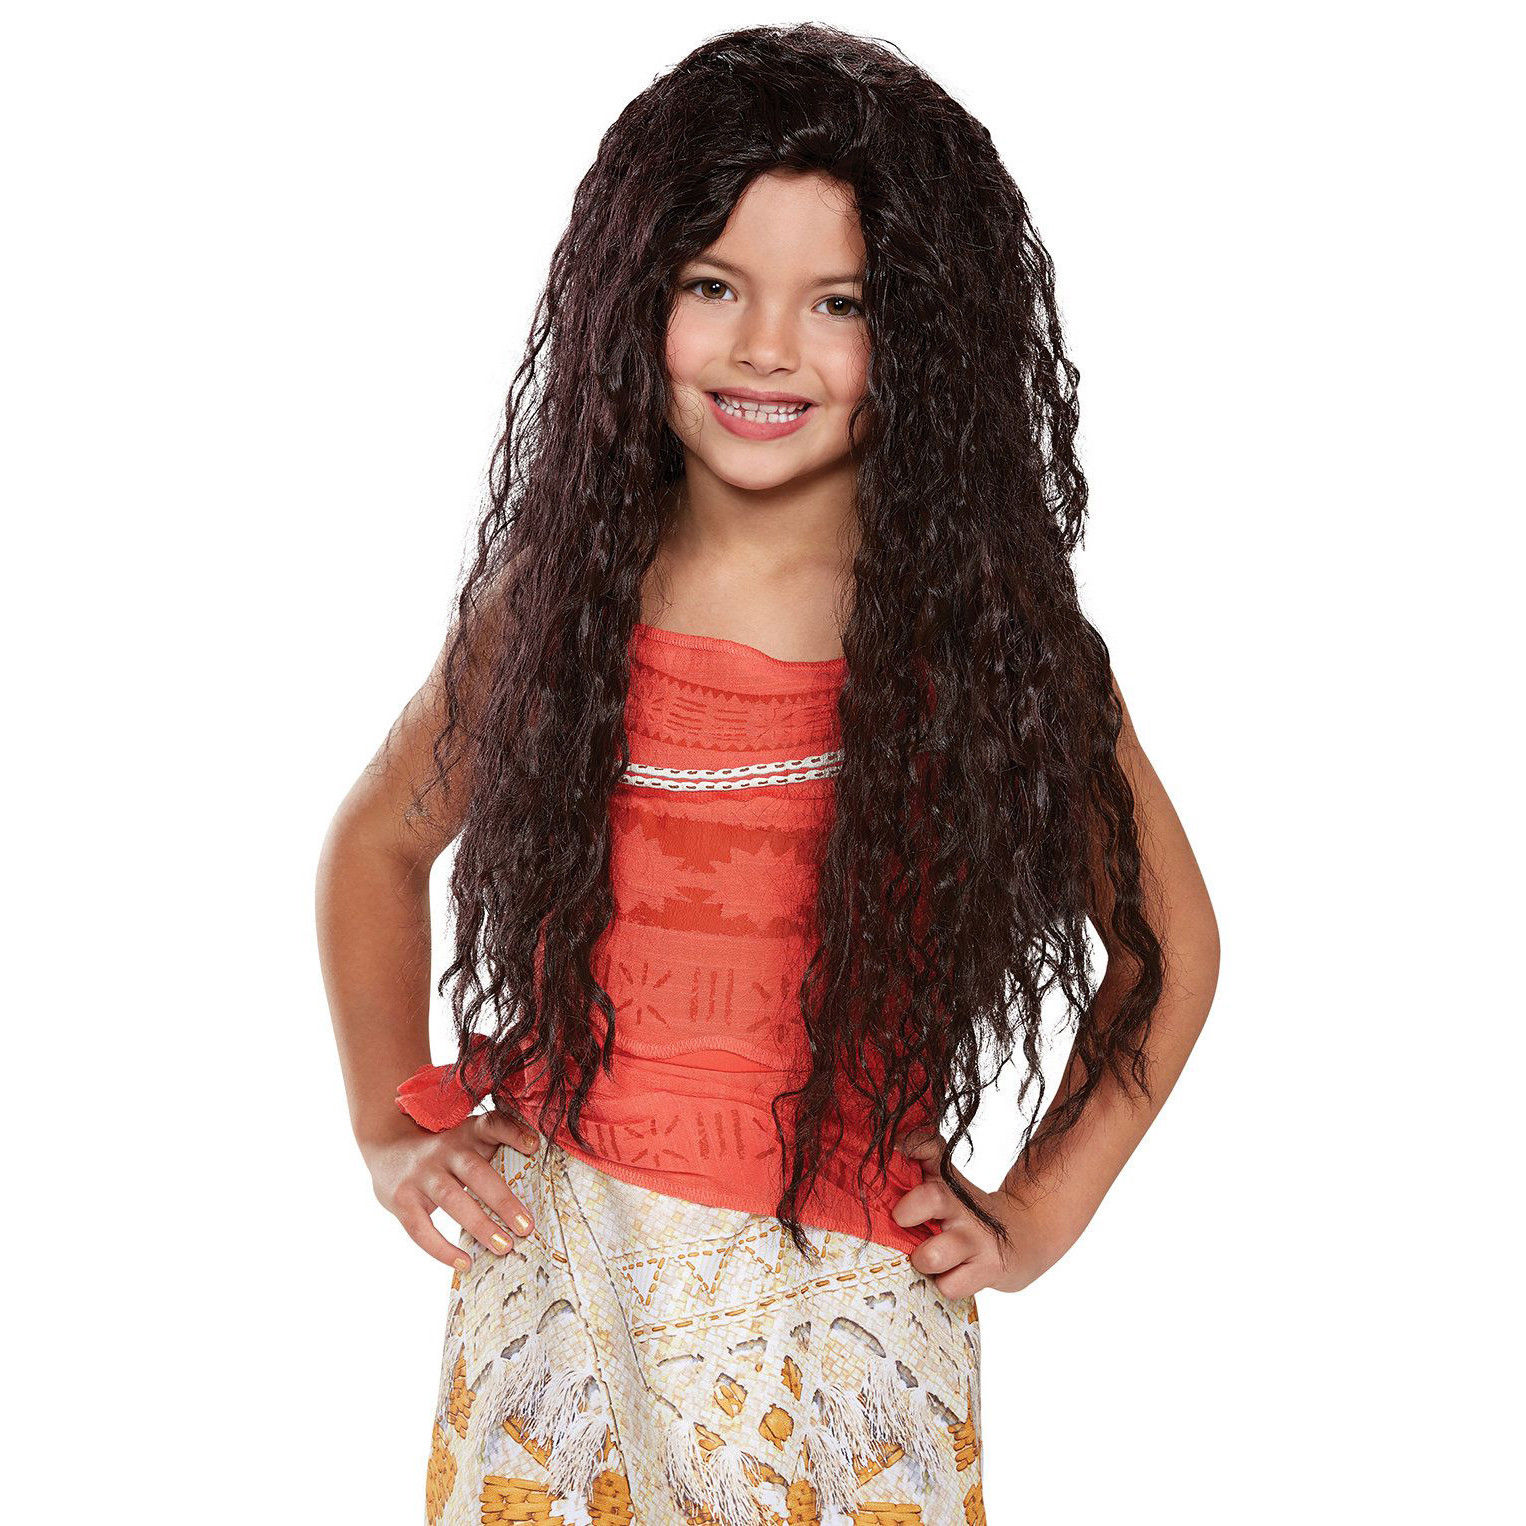 Disney Moana Deluxe Girl Child Wig Long Curly Hair Licensed Costume Accessory Ebay